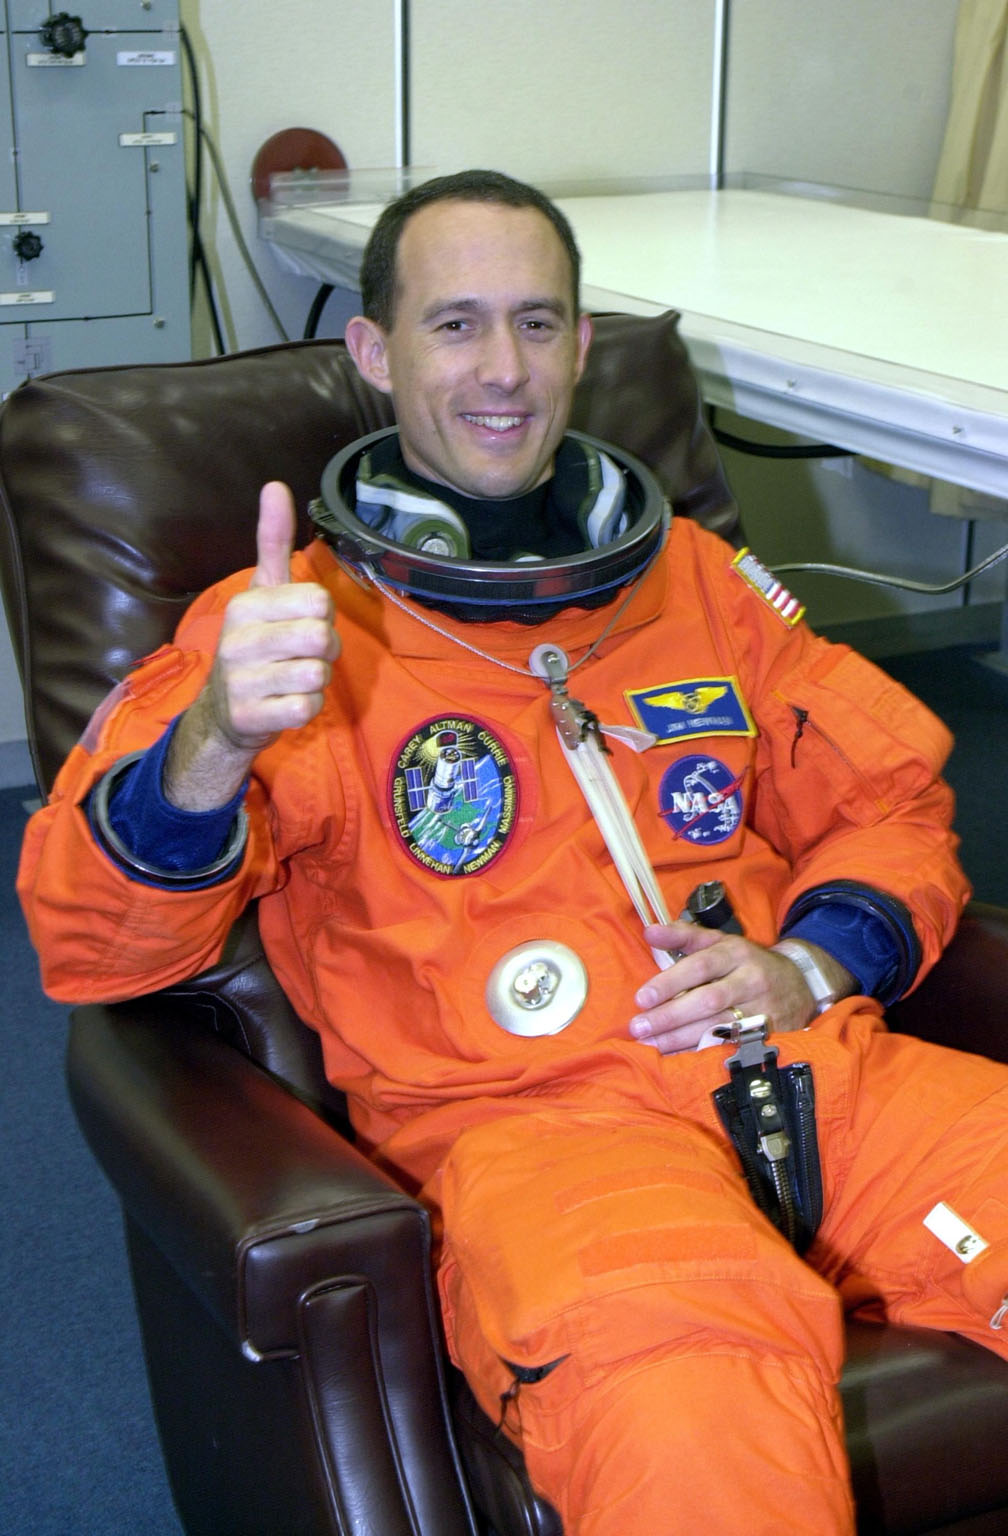 KENNEDY SPACE CENTER, Fla. - During suitup, STS-109 Mission Specialist James H. Newman gives a thumbs up for launch. Liftoff of Space Shuttle Columbia is scheduled for 6:22 a.m. EST March 1. On mission STS-109, the crew will capture the Hubble Space Telescope using the Shuttle's robotic arm and secure it on a workstand in Columbia's payload bay. Four mission specialists will perform five scheduled spacewalks to complete system upgrades to the telescope. More durable solar arrays, a large gyroscopic assembly to help point the telescope properly, a new telescope power control unit, and a cooling system to restore the use of a key infrared camera and spectrometer unit, which has been dormant since 1999, will all be installed. In addition, the telescope's view of the Universe will be improved with the addition of the Advanced Camera for Surveys (ACS), which replaces the Faint Object Camera, the last of Hubble's original instruments. Mission STS-109 is the 27th flight of the orbiter Columbia and the 108th flight overall in NASA's Space Shuttle program. After the 11-day mission, Columbia is scheduled to land about 4:35 a.m. EST March 12